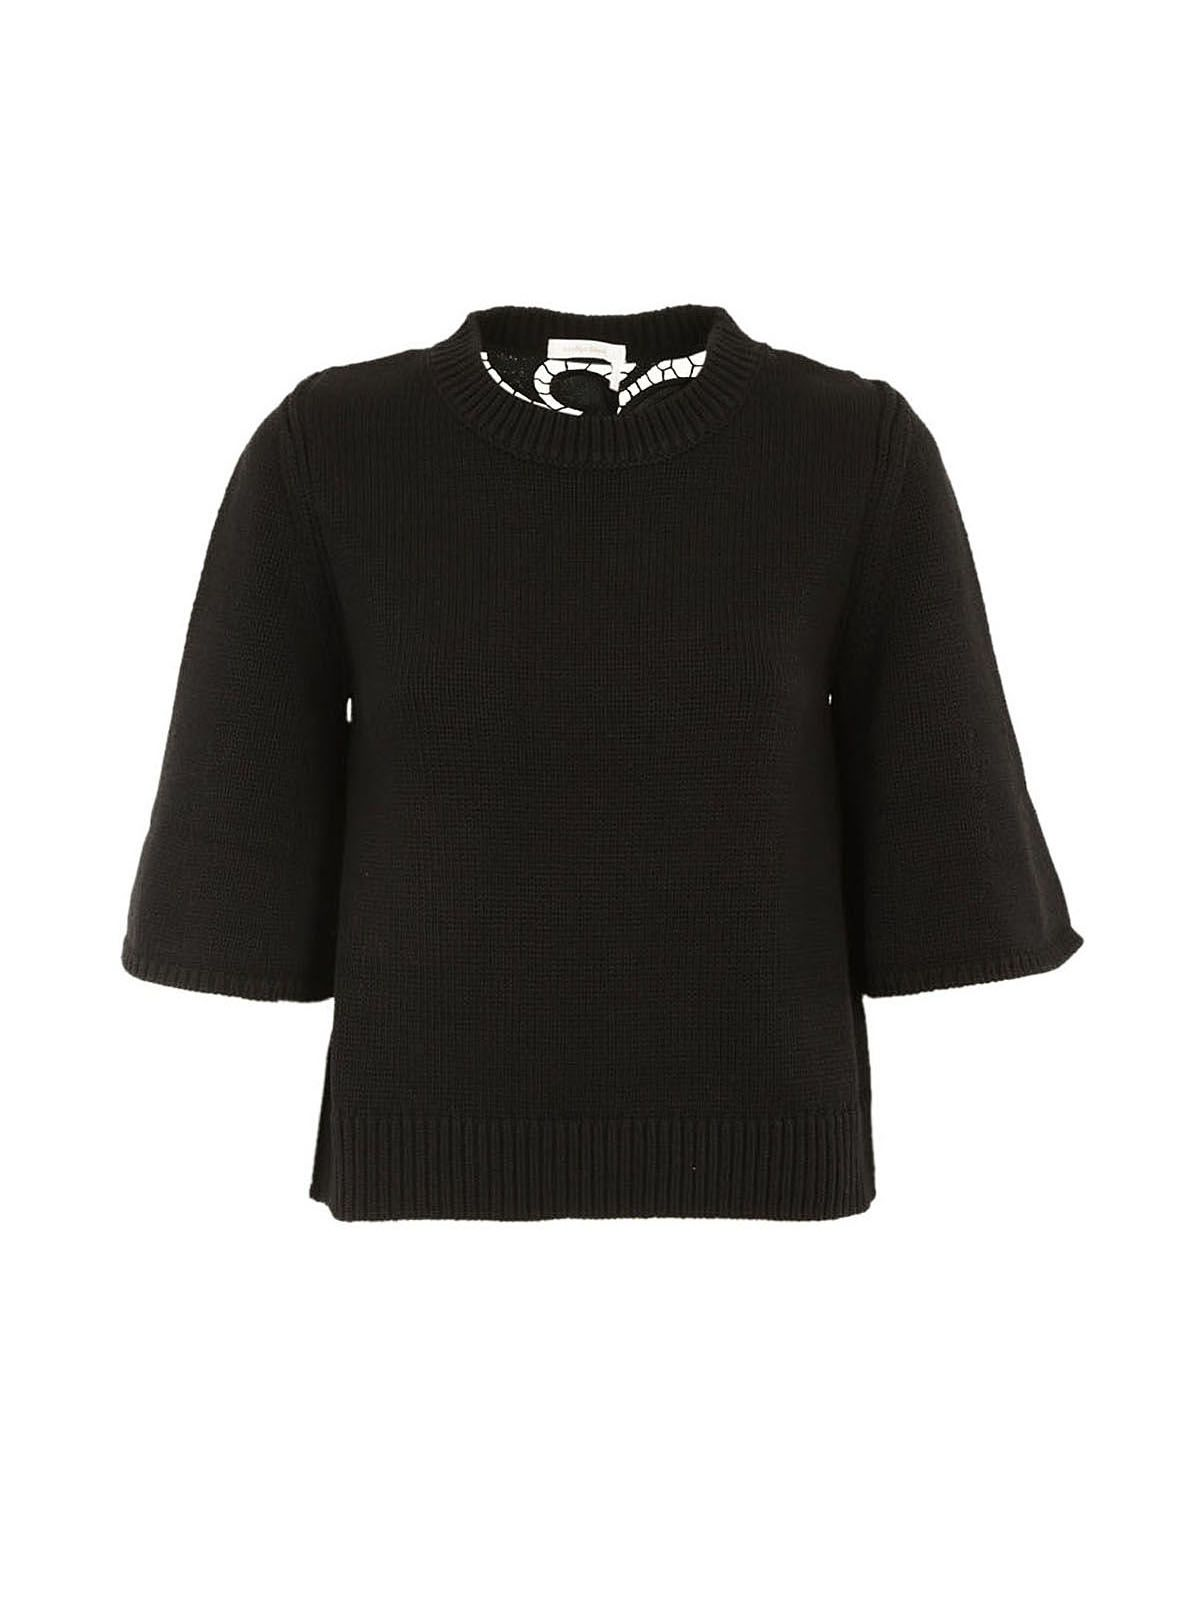 See By Chlo? Flared Cuff Sweater